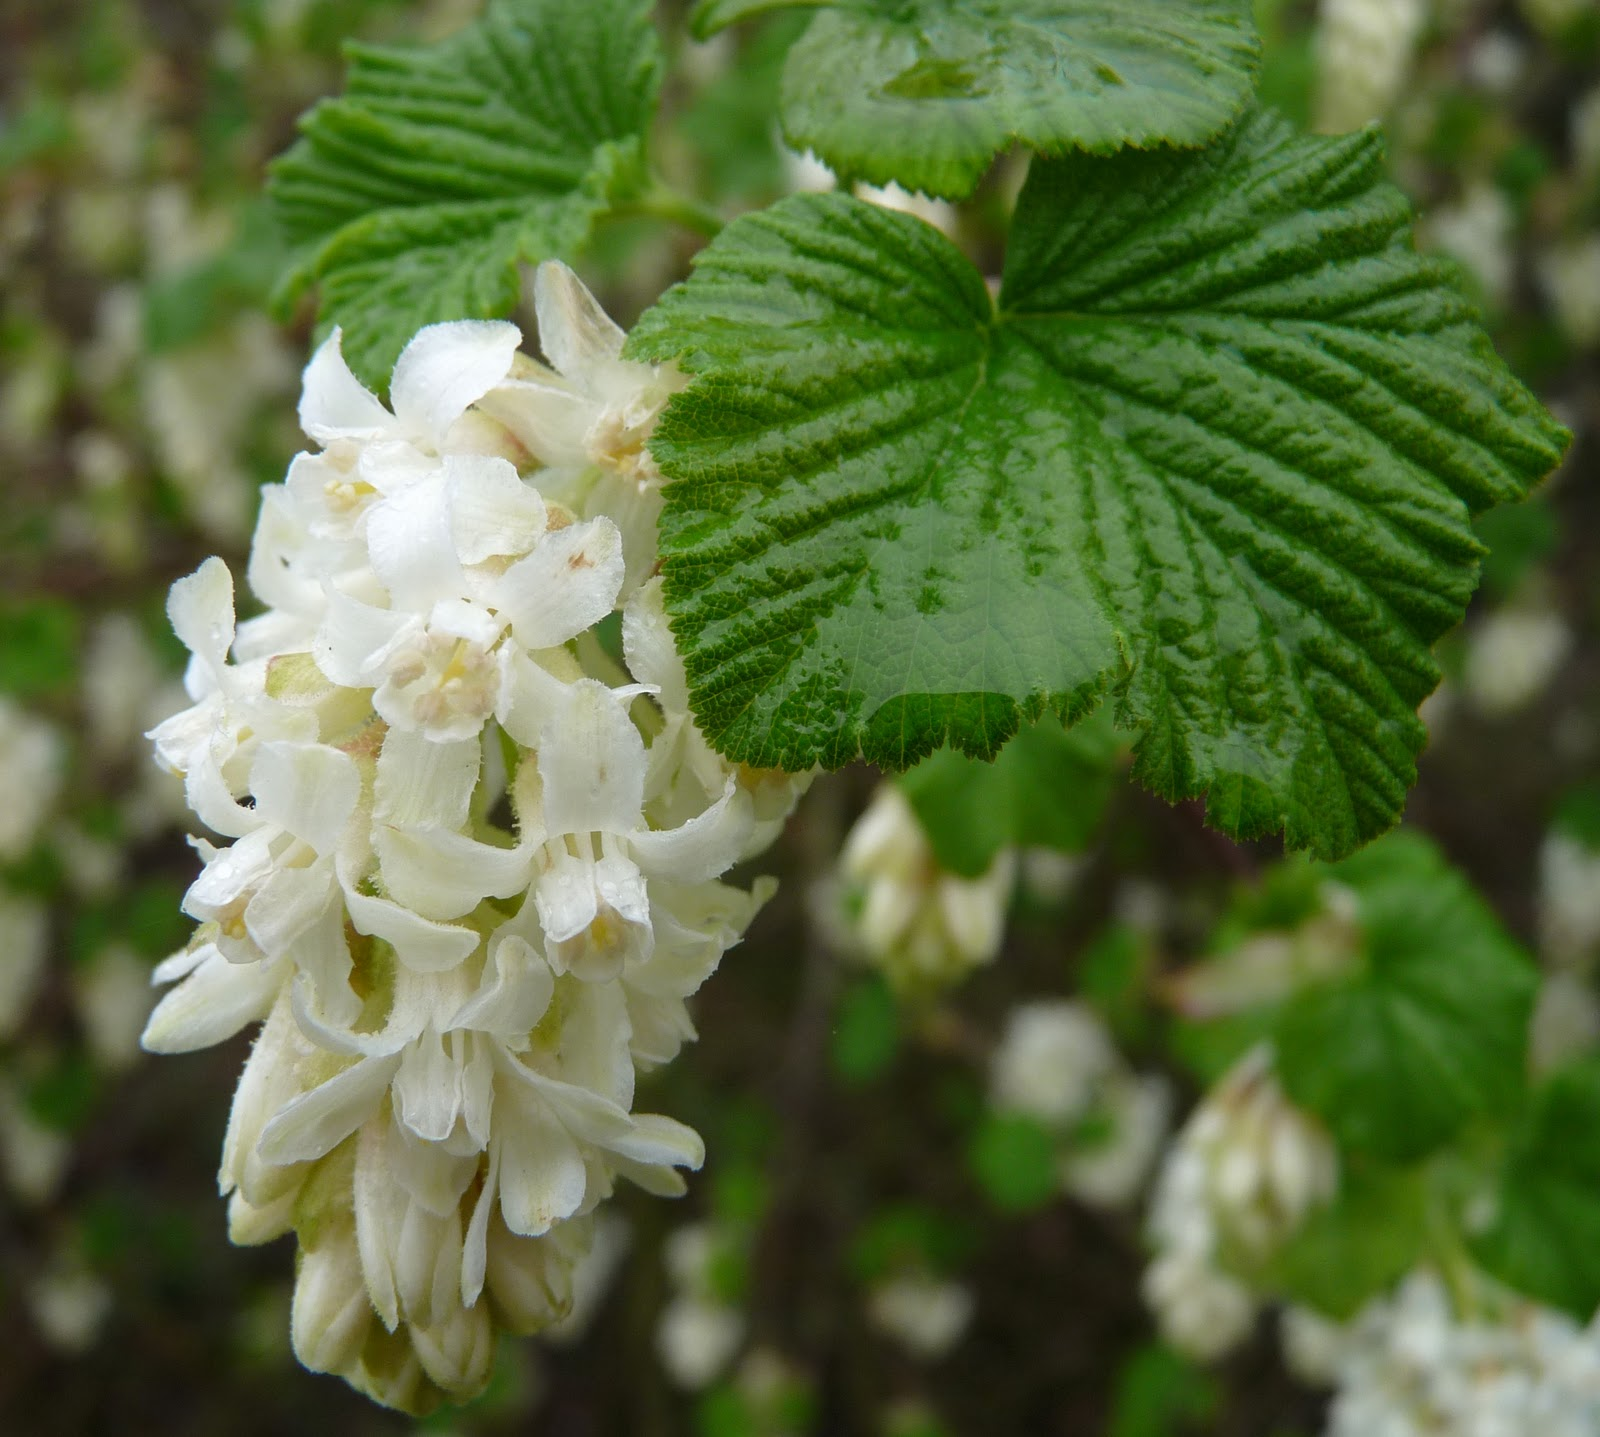 Holkham walled garden ribes sanguineum white icicle march in the holkham walled garden and the prettiest of flowering currants is blooming ribes sanguineum white icicle flowers before the more often seen mightylinksfo